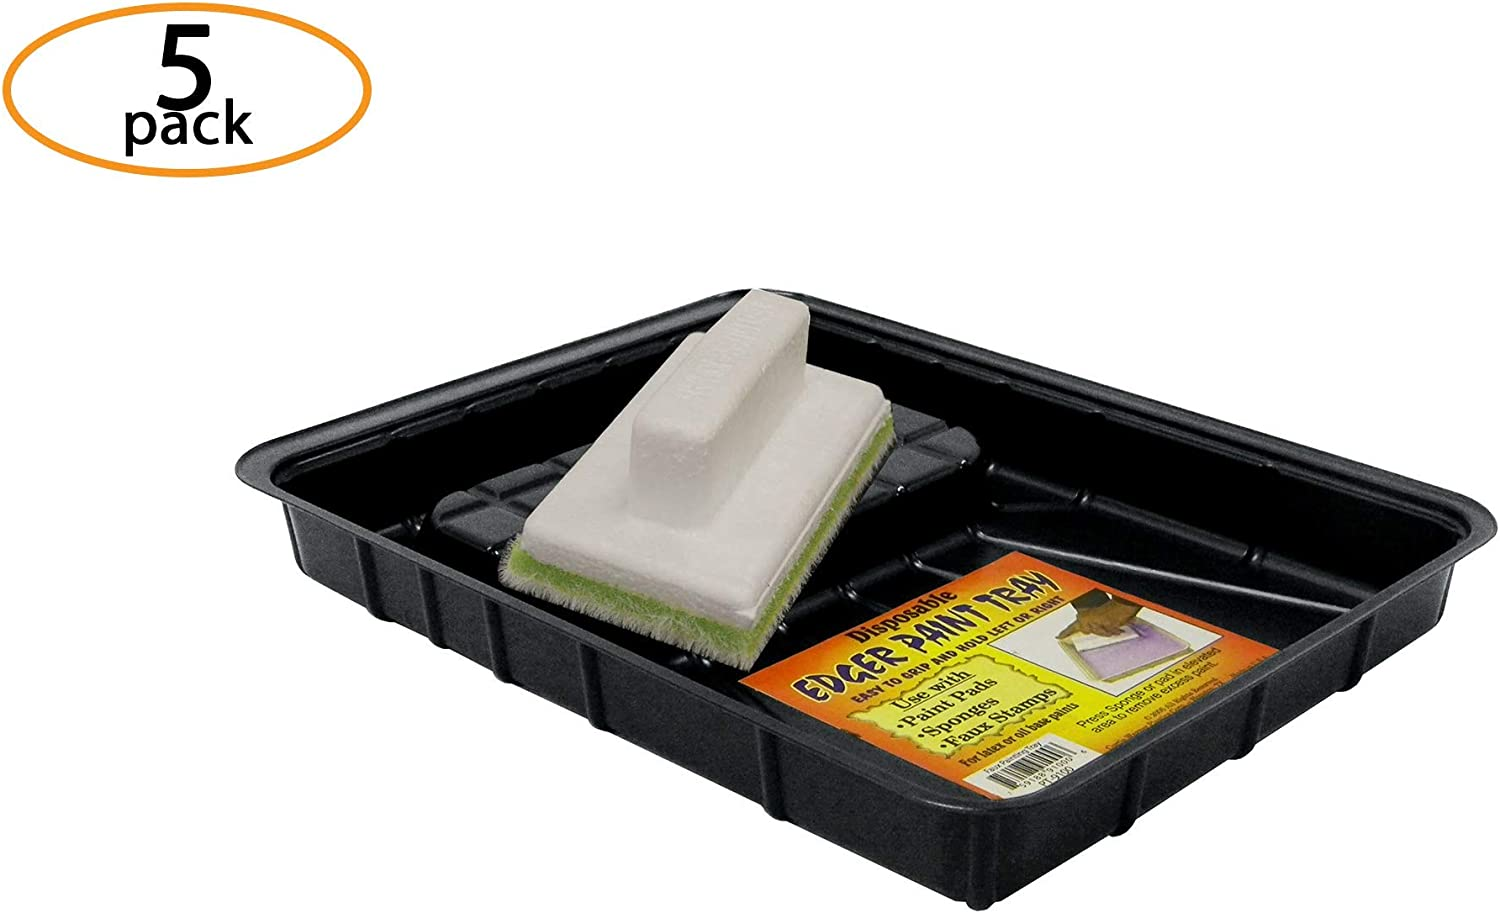 Dimensions: 9 x 7 - Heavy Duty Plastic Disposable /& Reusable Paint Tray Liner for Your Rollers /& Brushes 5-Pack Curtis Wagner Plastics Trim Paint Tray Large Small Medium Large Paint Trays Handy